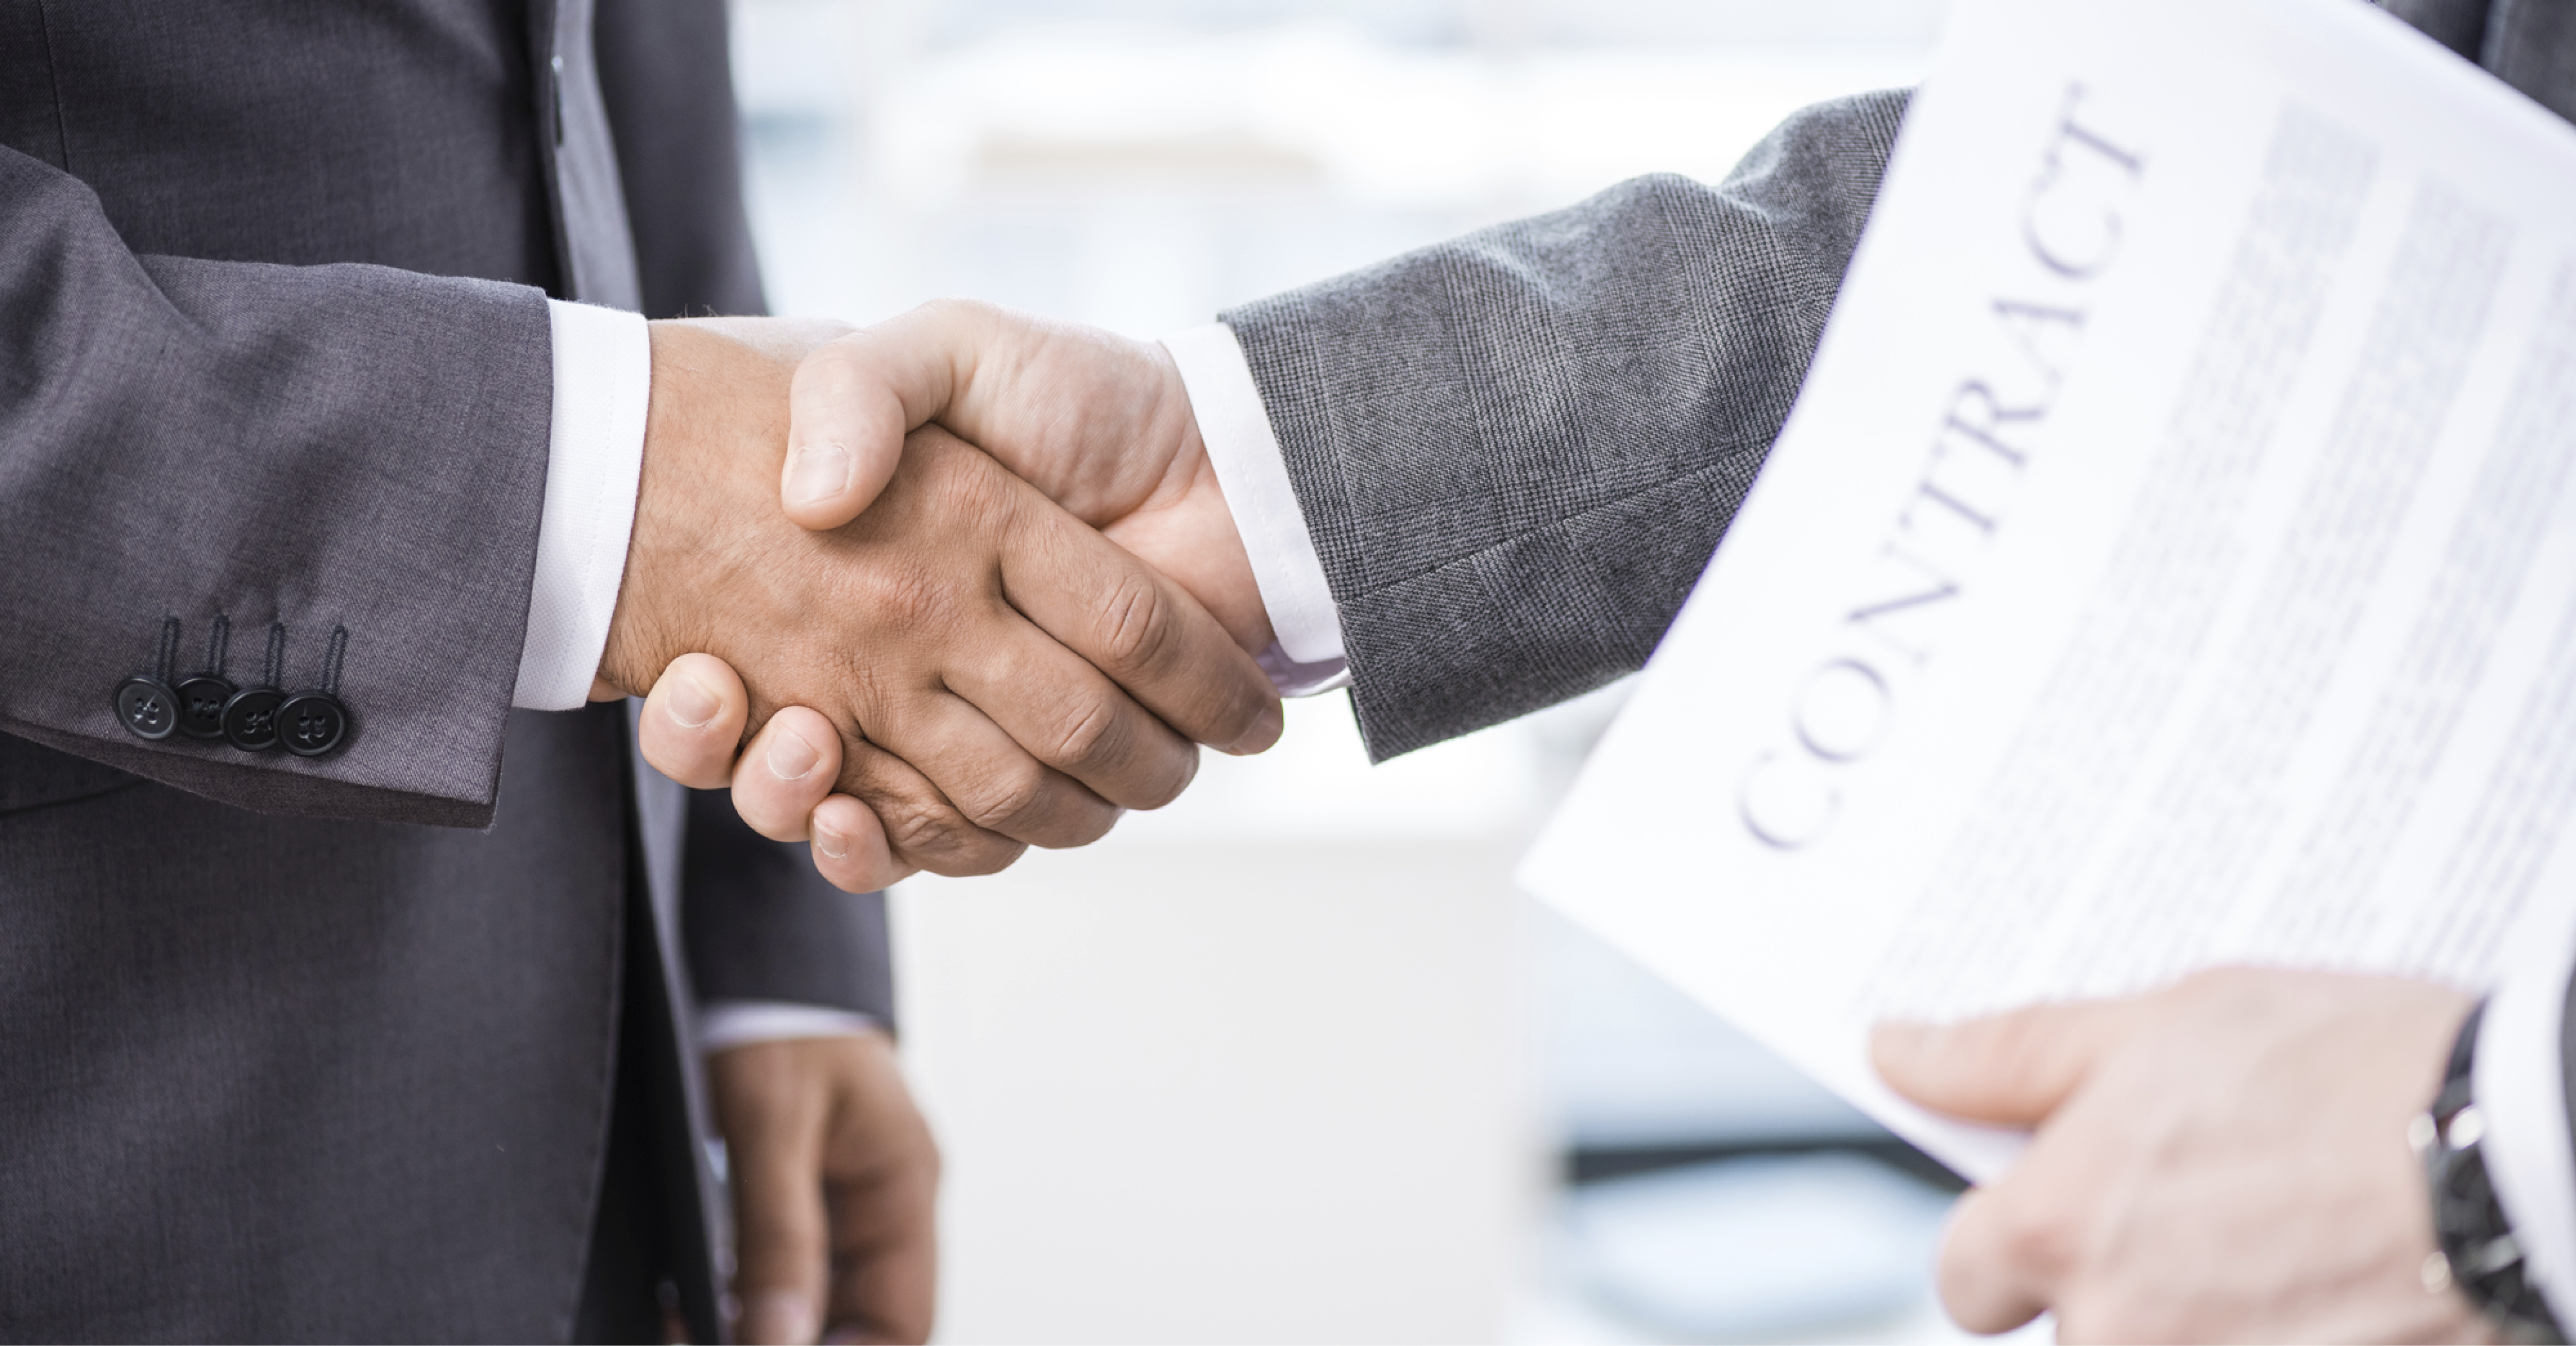 How To Buy Out Your Business Partner